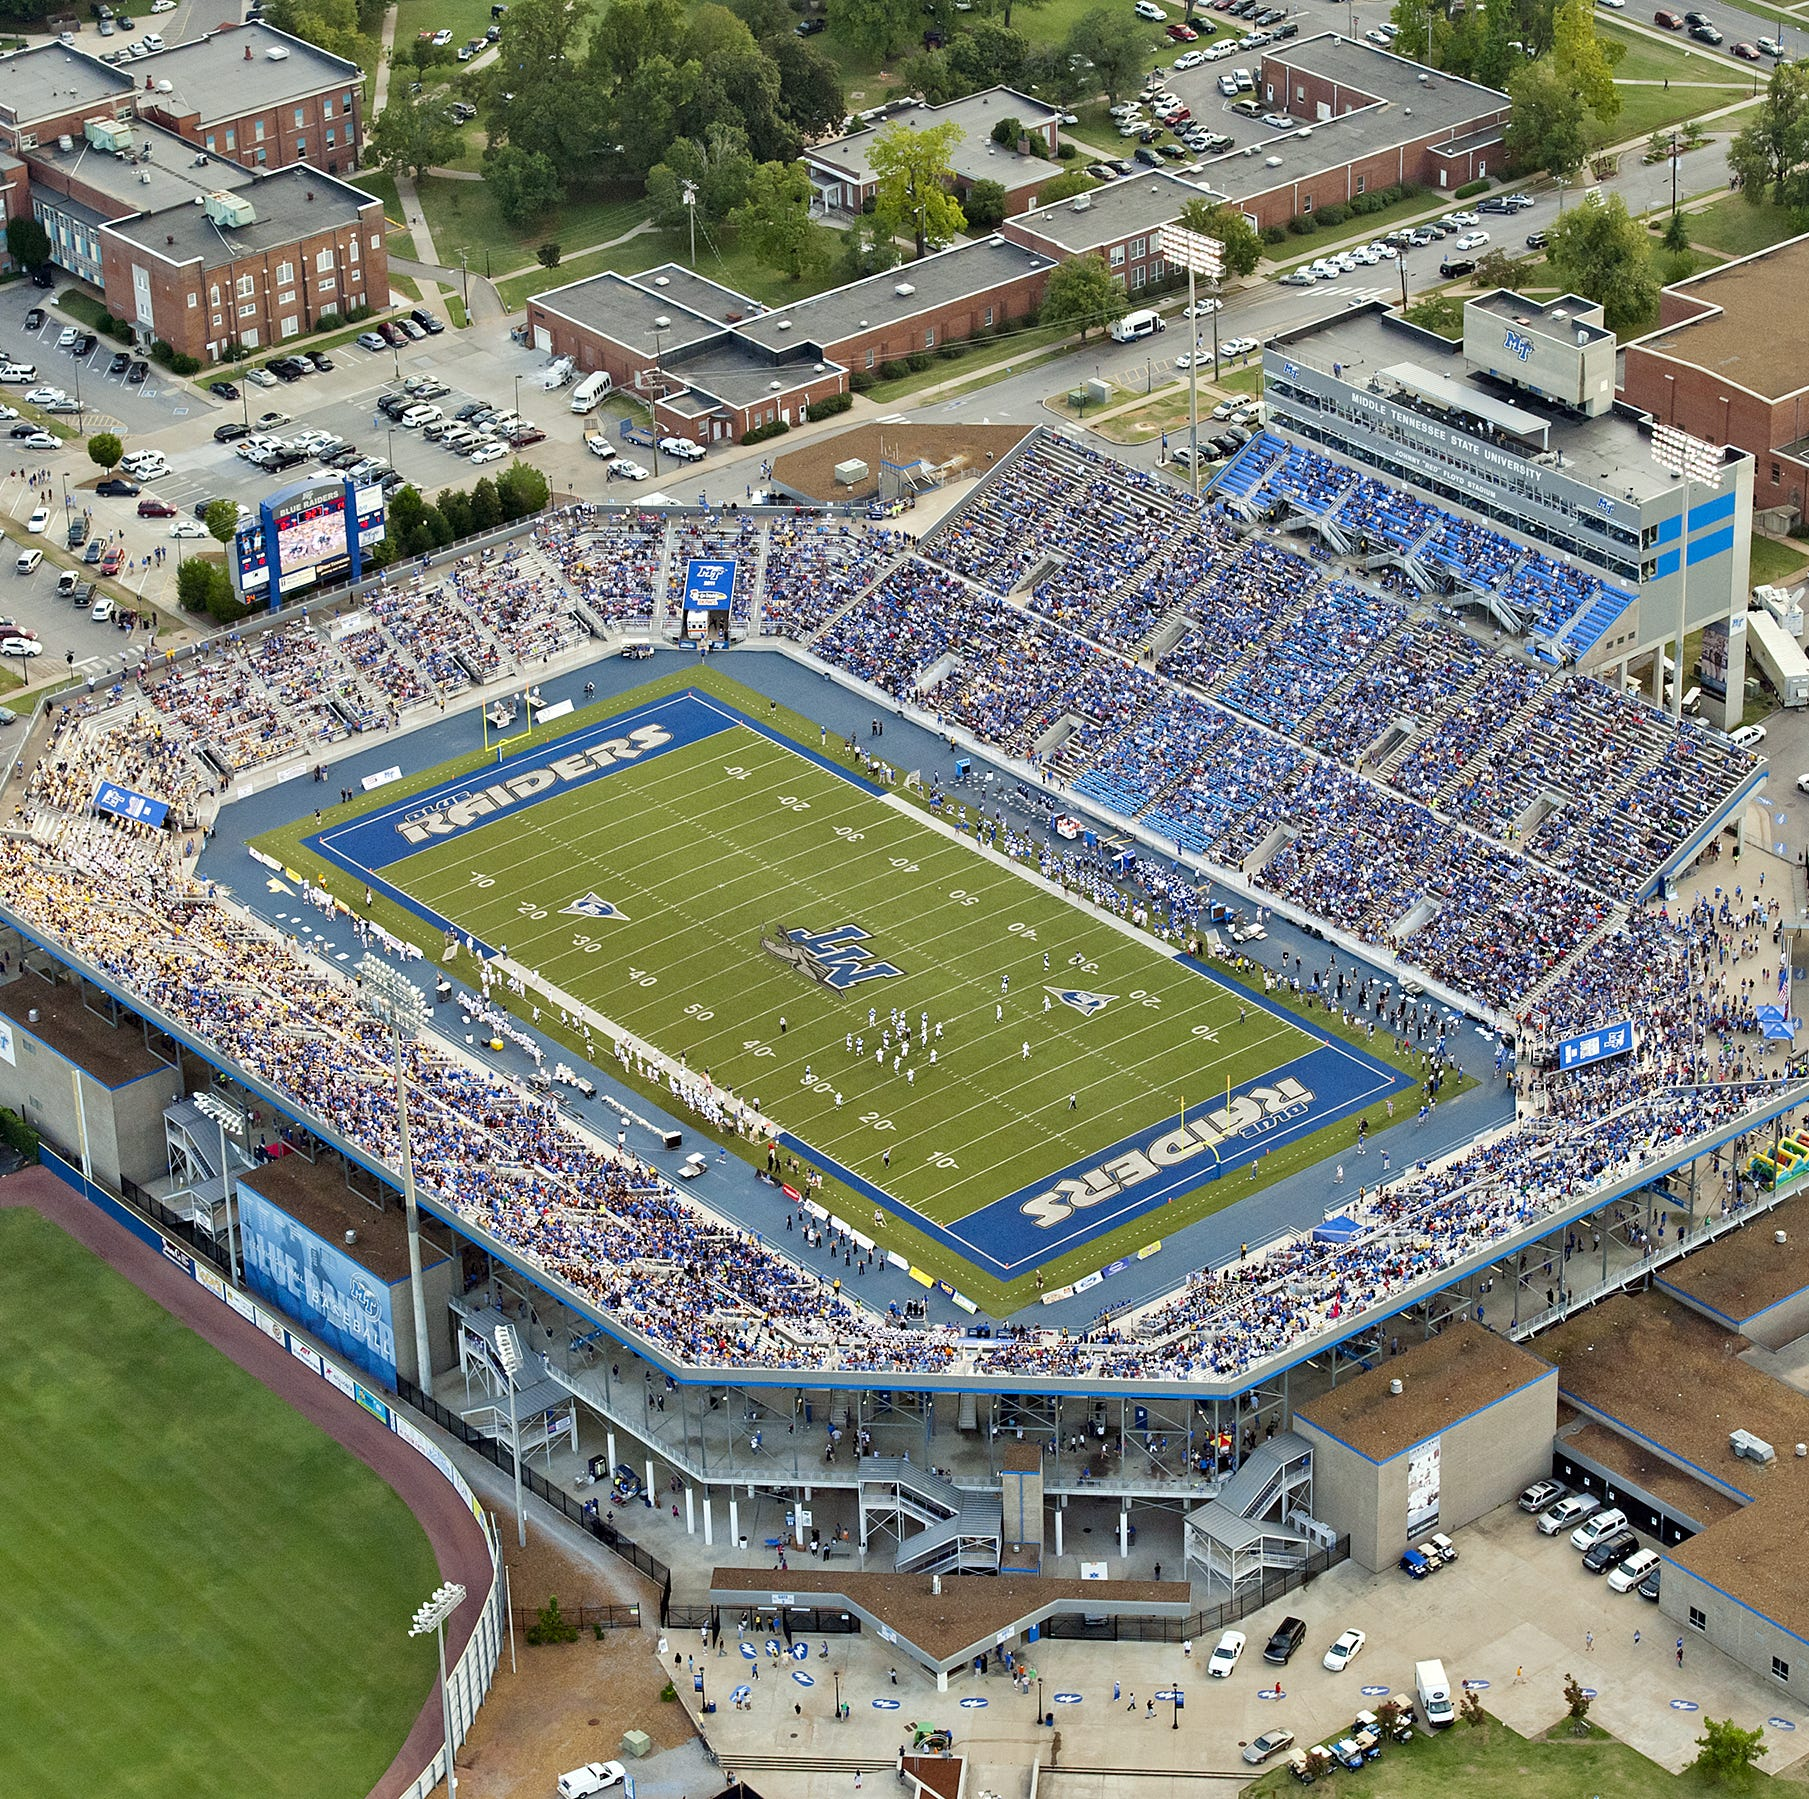 MTSU fails to draw 10,000 fans to any football game in 2018 season